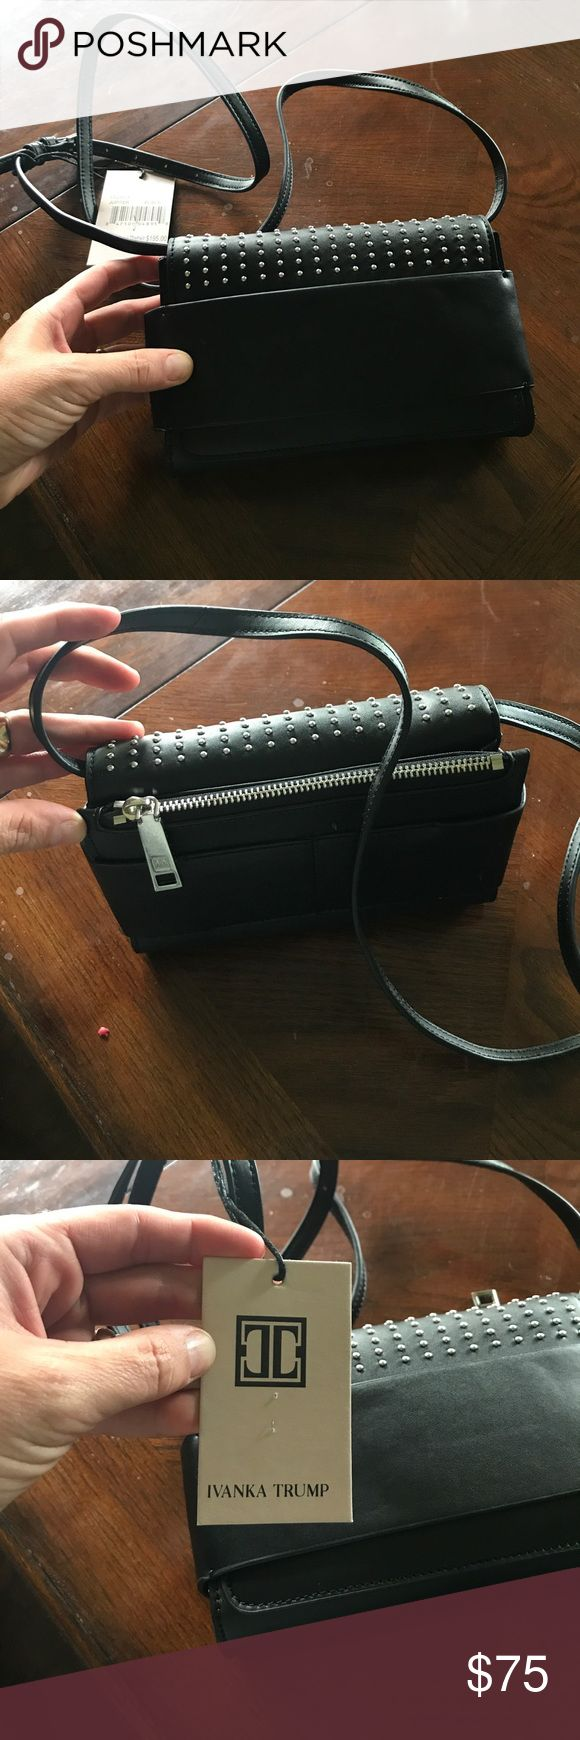 Ivanka Trump Cross Body Ivanka Trump Cross Body . Black , New with tags Ivanka Trump Bags Crossbody Bags